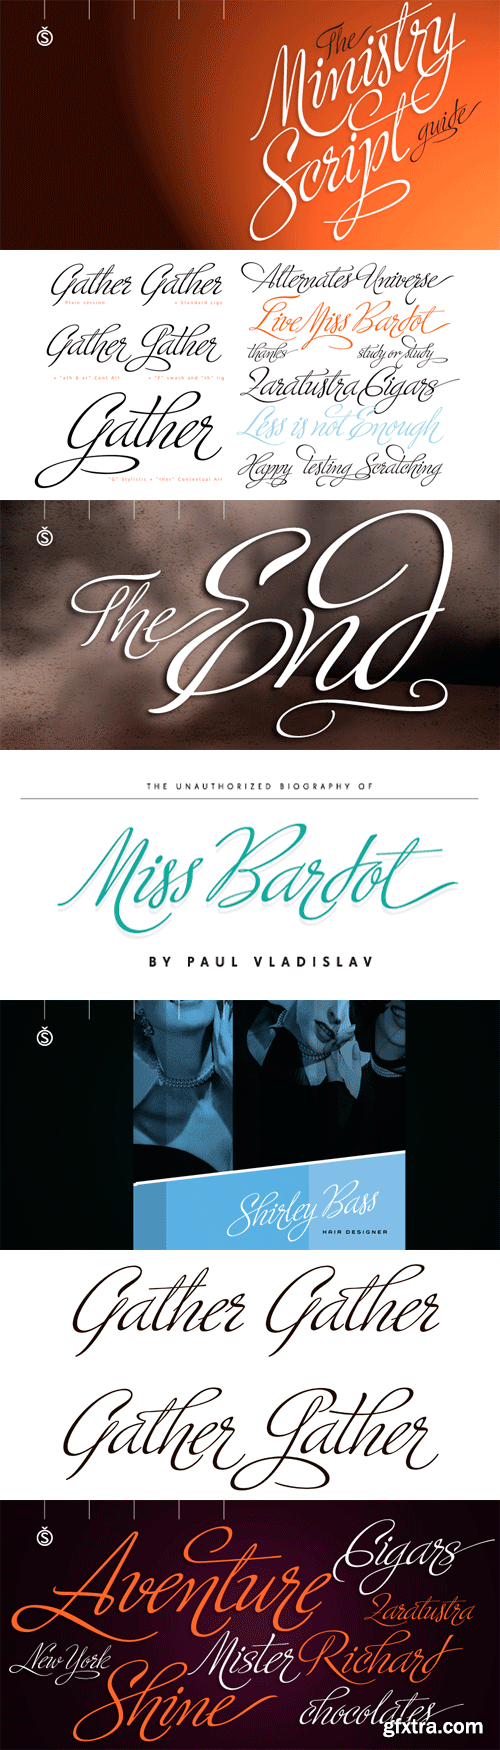 Ministry Script Font for $99